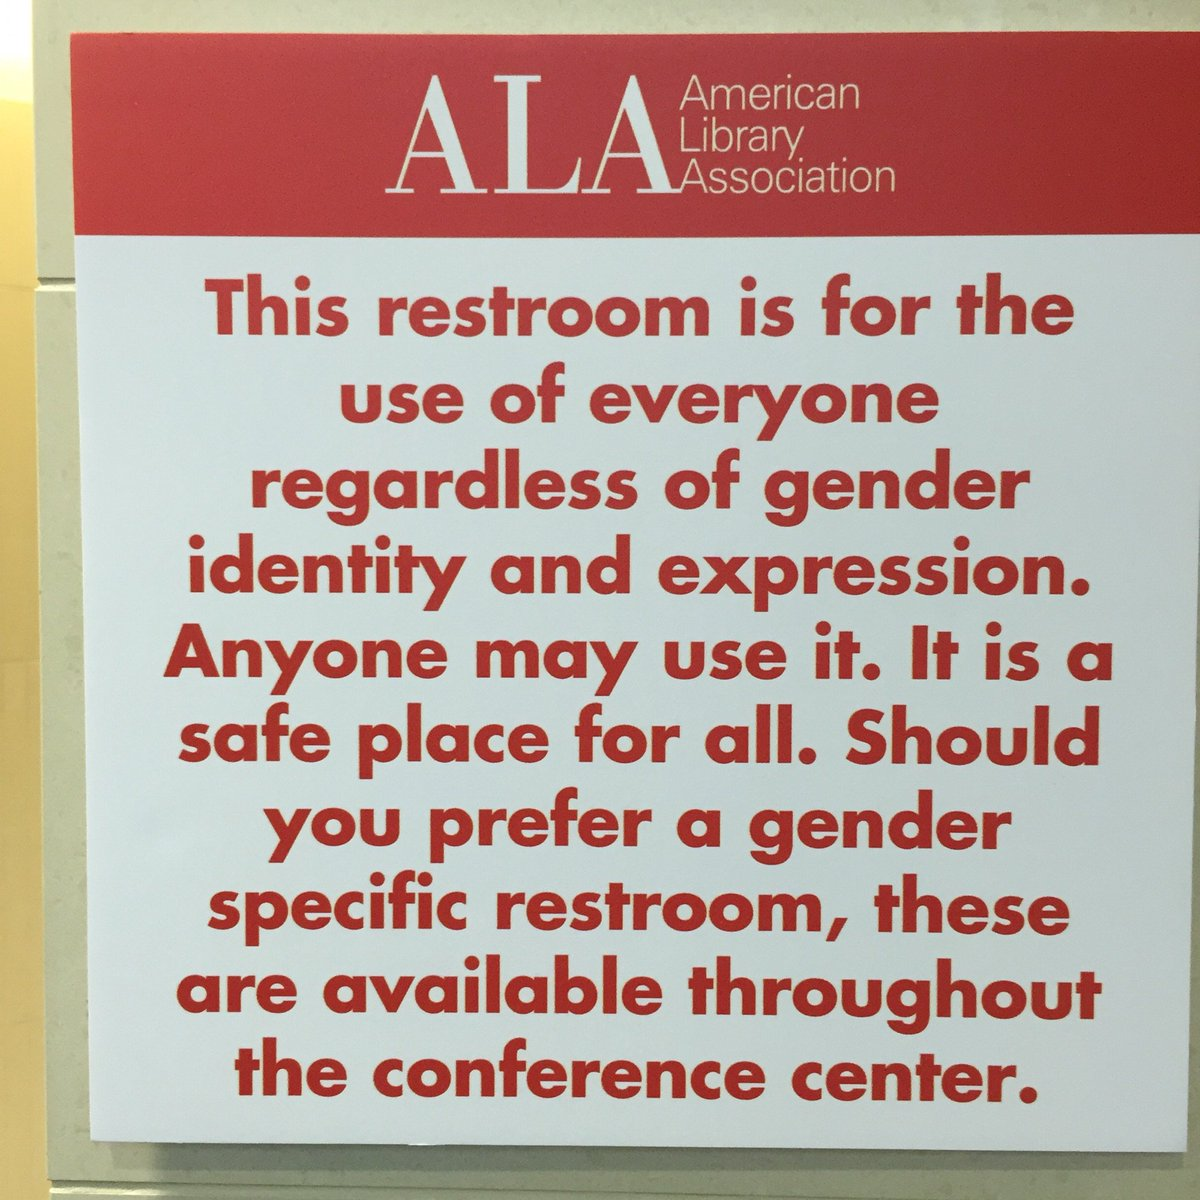 #alaac16 Thank you, ALA. I love this: https://t.co/q7aeBp8vqx